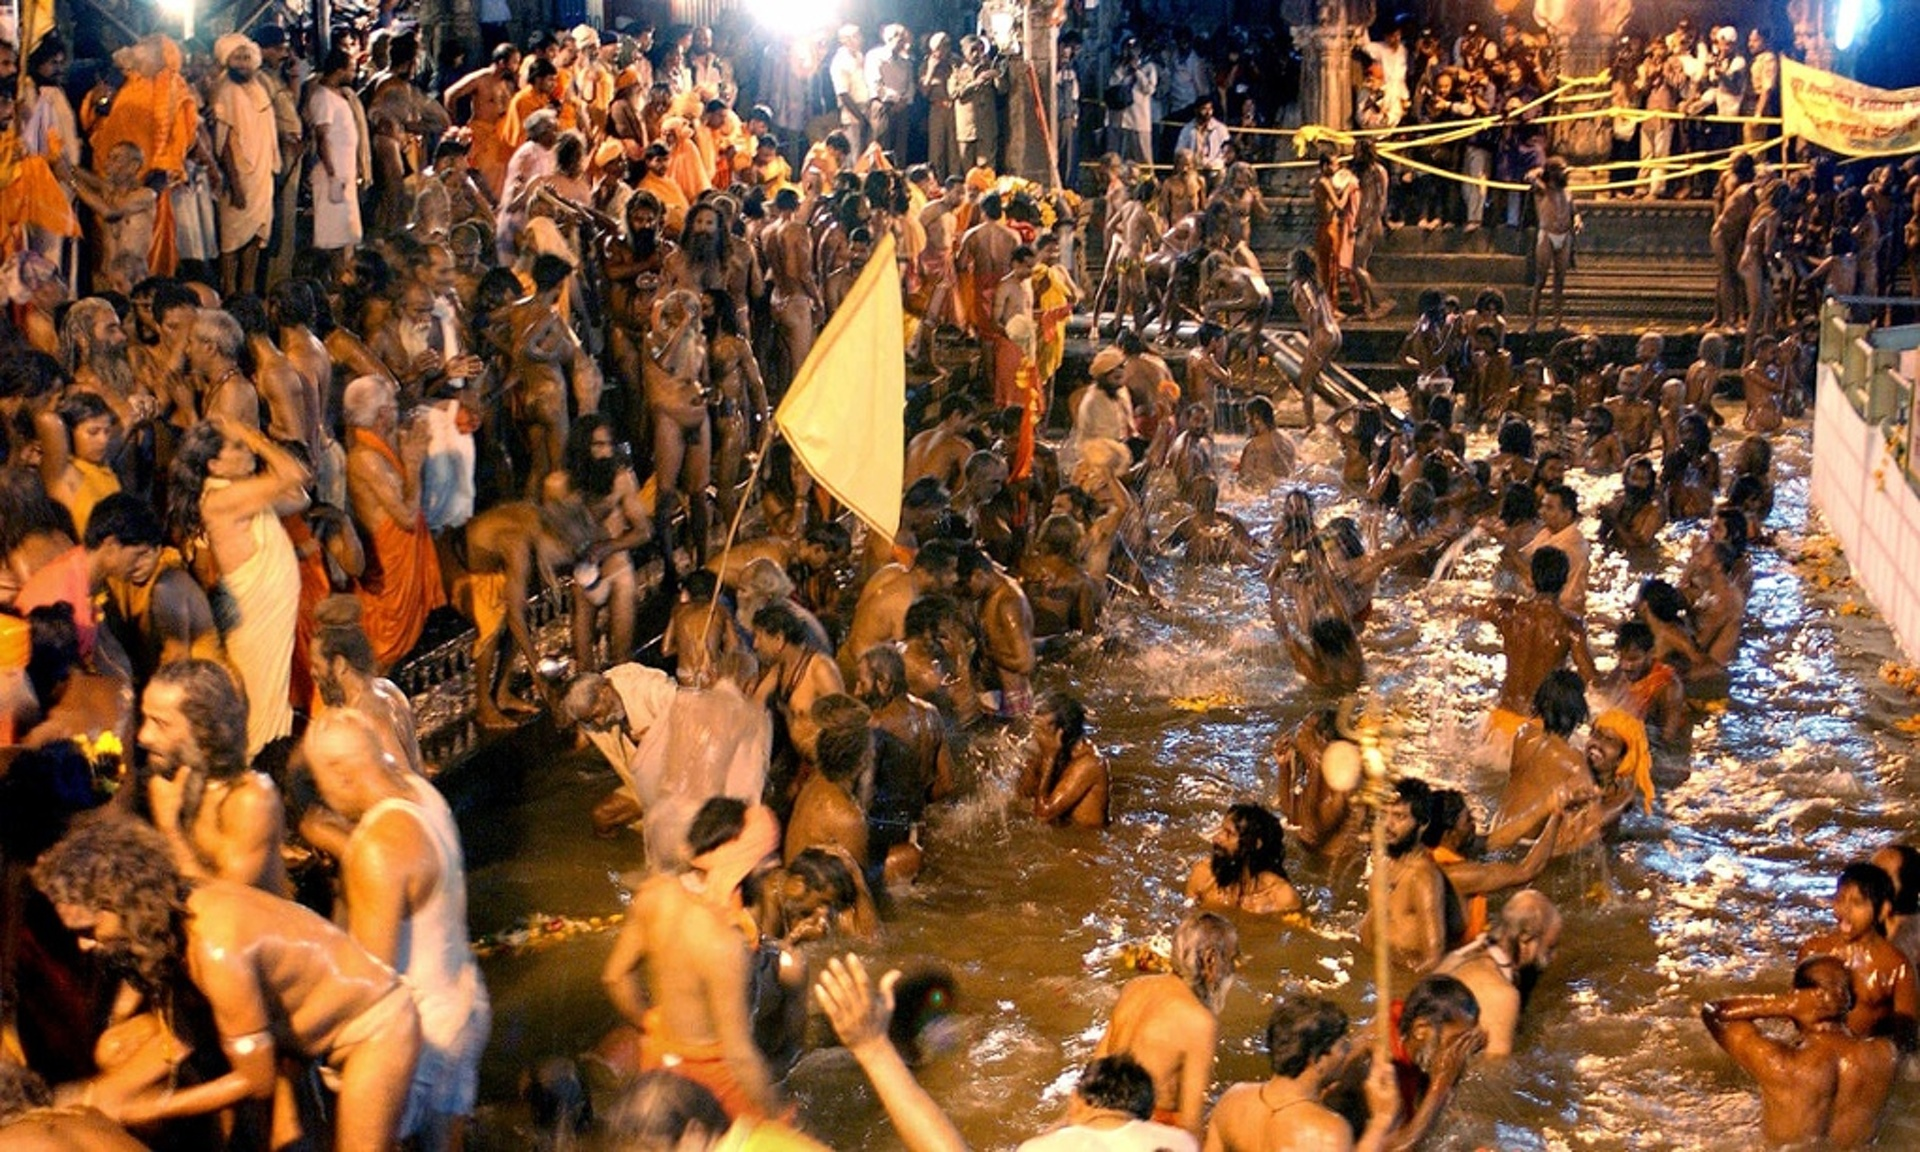 Stampede at Hindu Religious Festival Leaves 22 Dead | Cyber Gazing